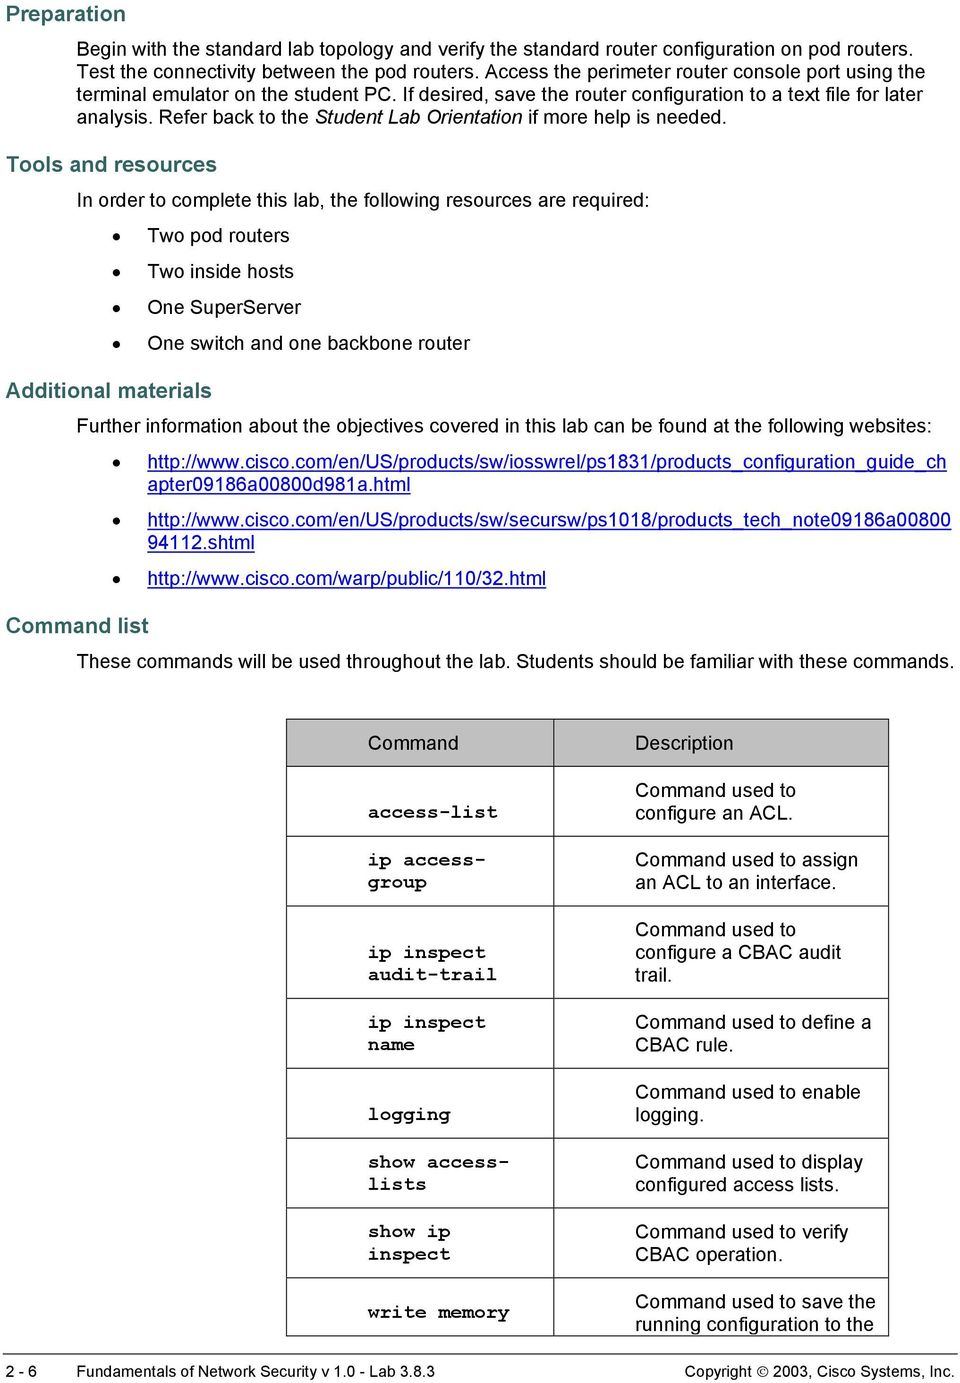 Lab Configure Cisco IOS Firewall CBAC on a Cisco Router - PDF